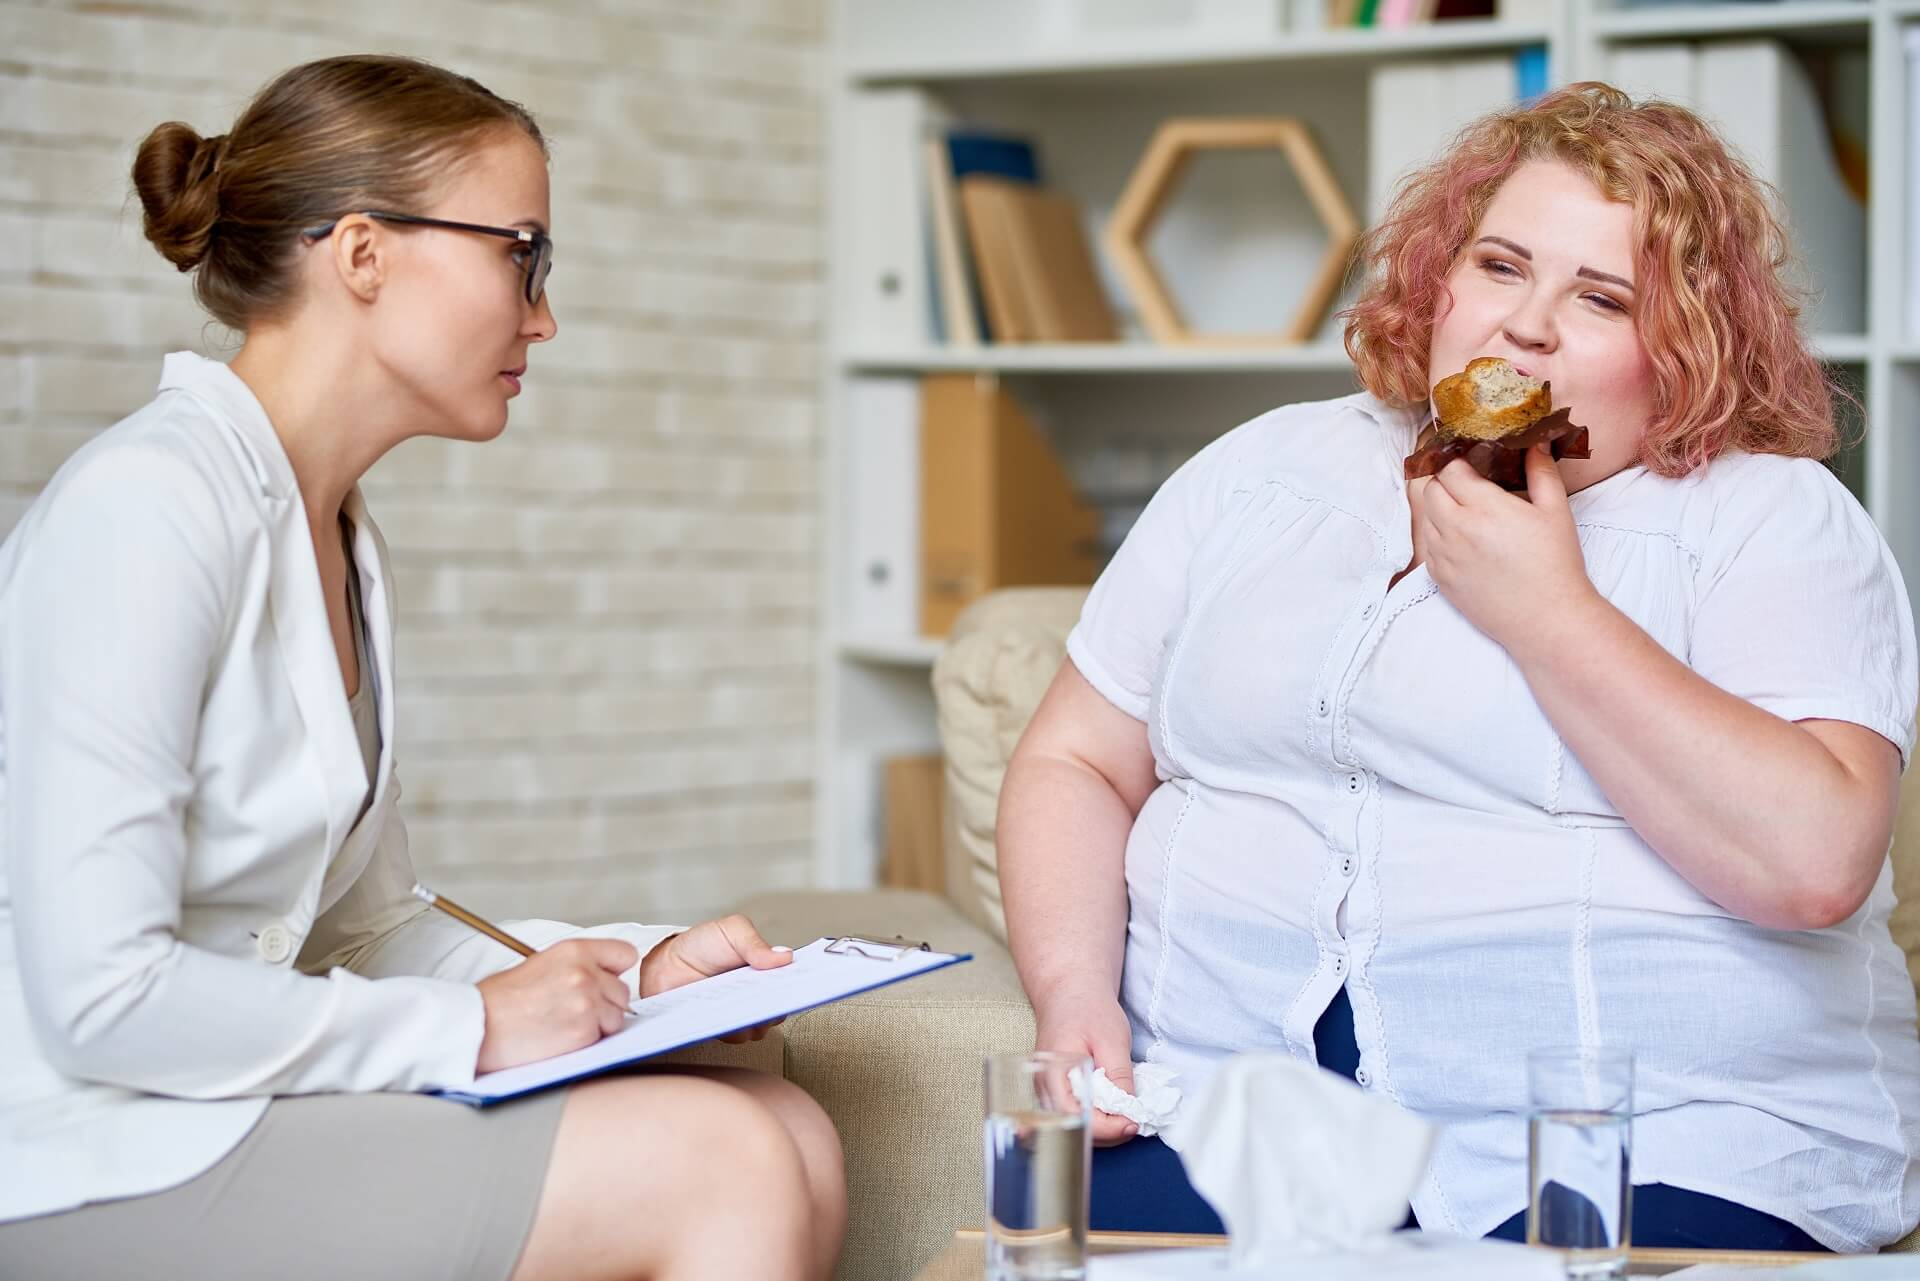 obese-woman-consulting-about-eating-disorder-9STGRVM